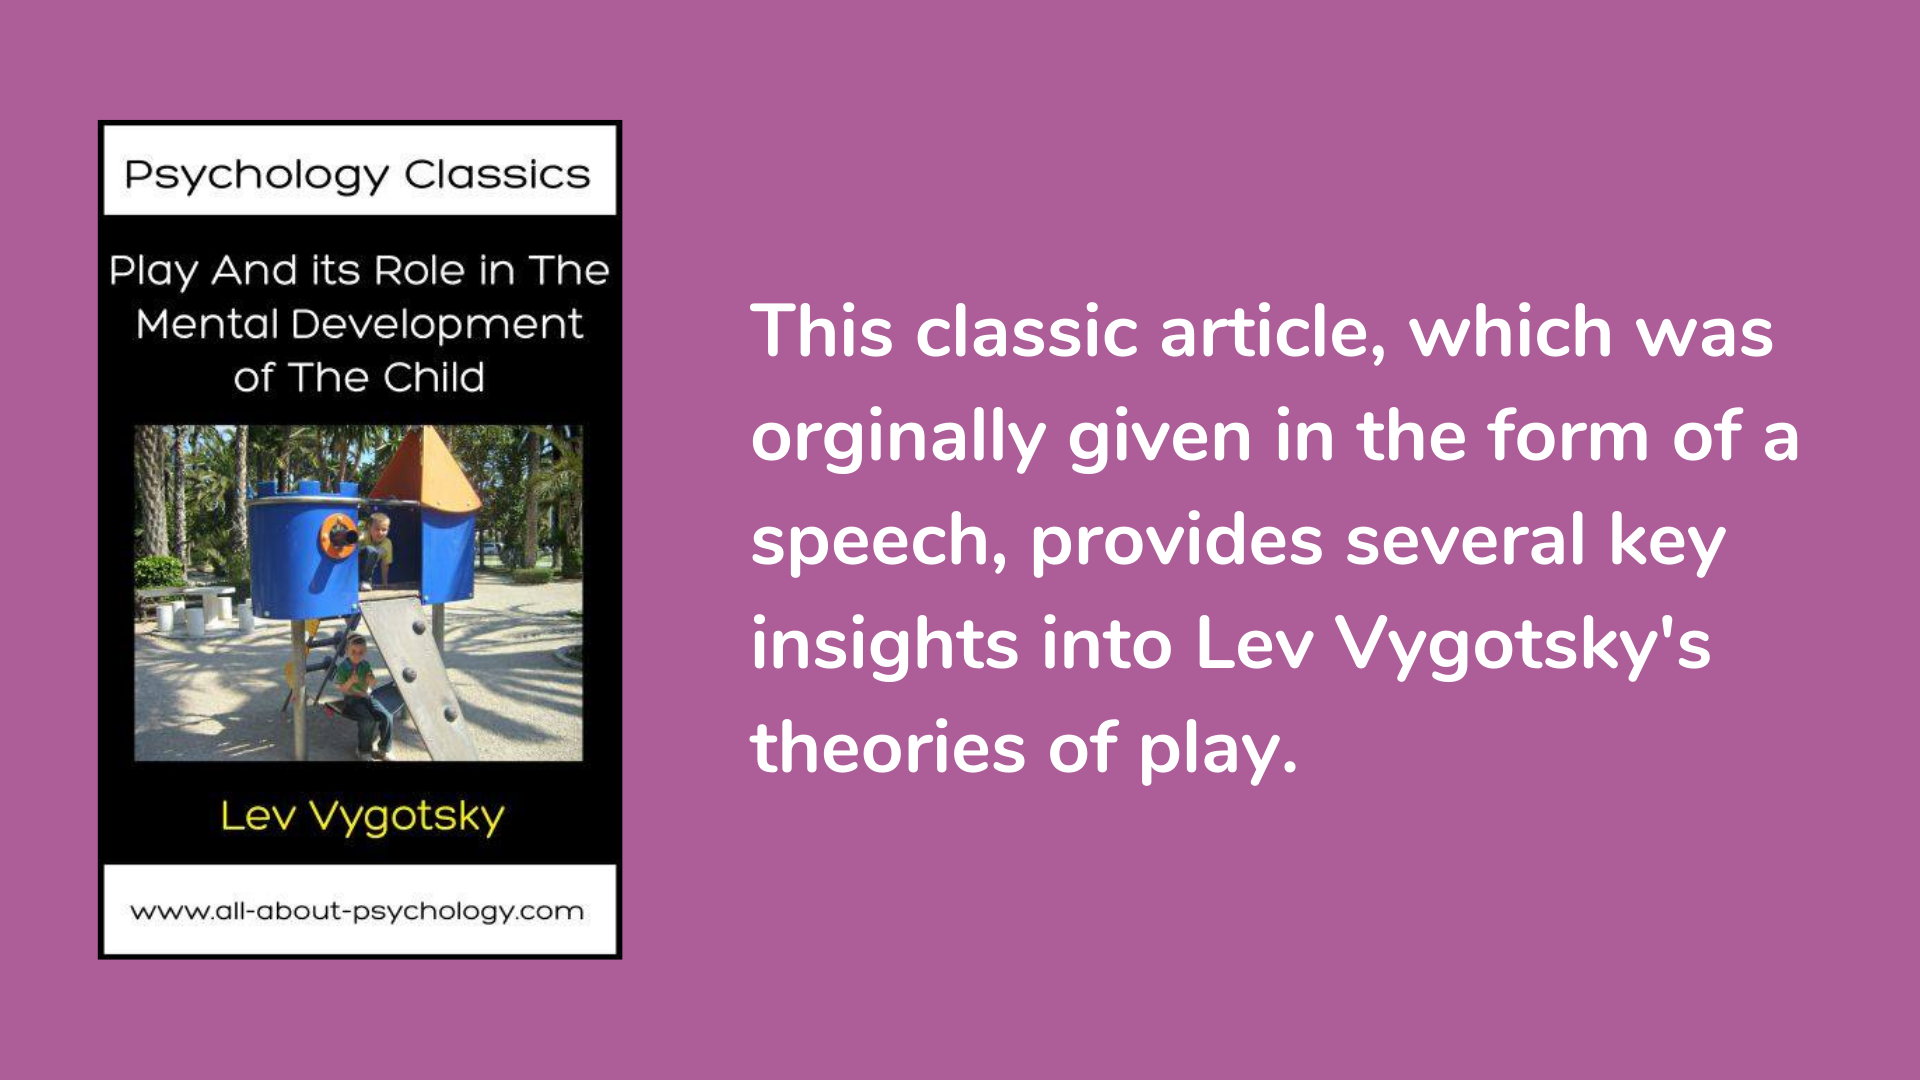 Play And its Role in The Mental Development of The Child by Lev Vygotsky book cover and description.